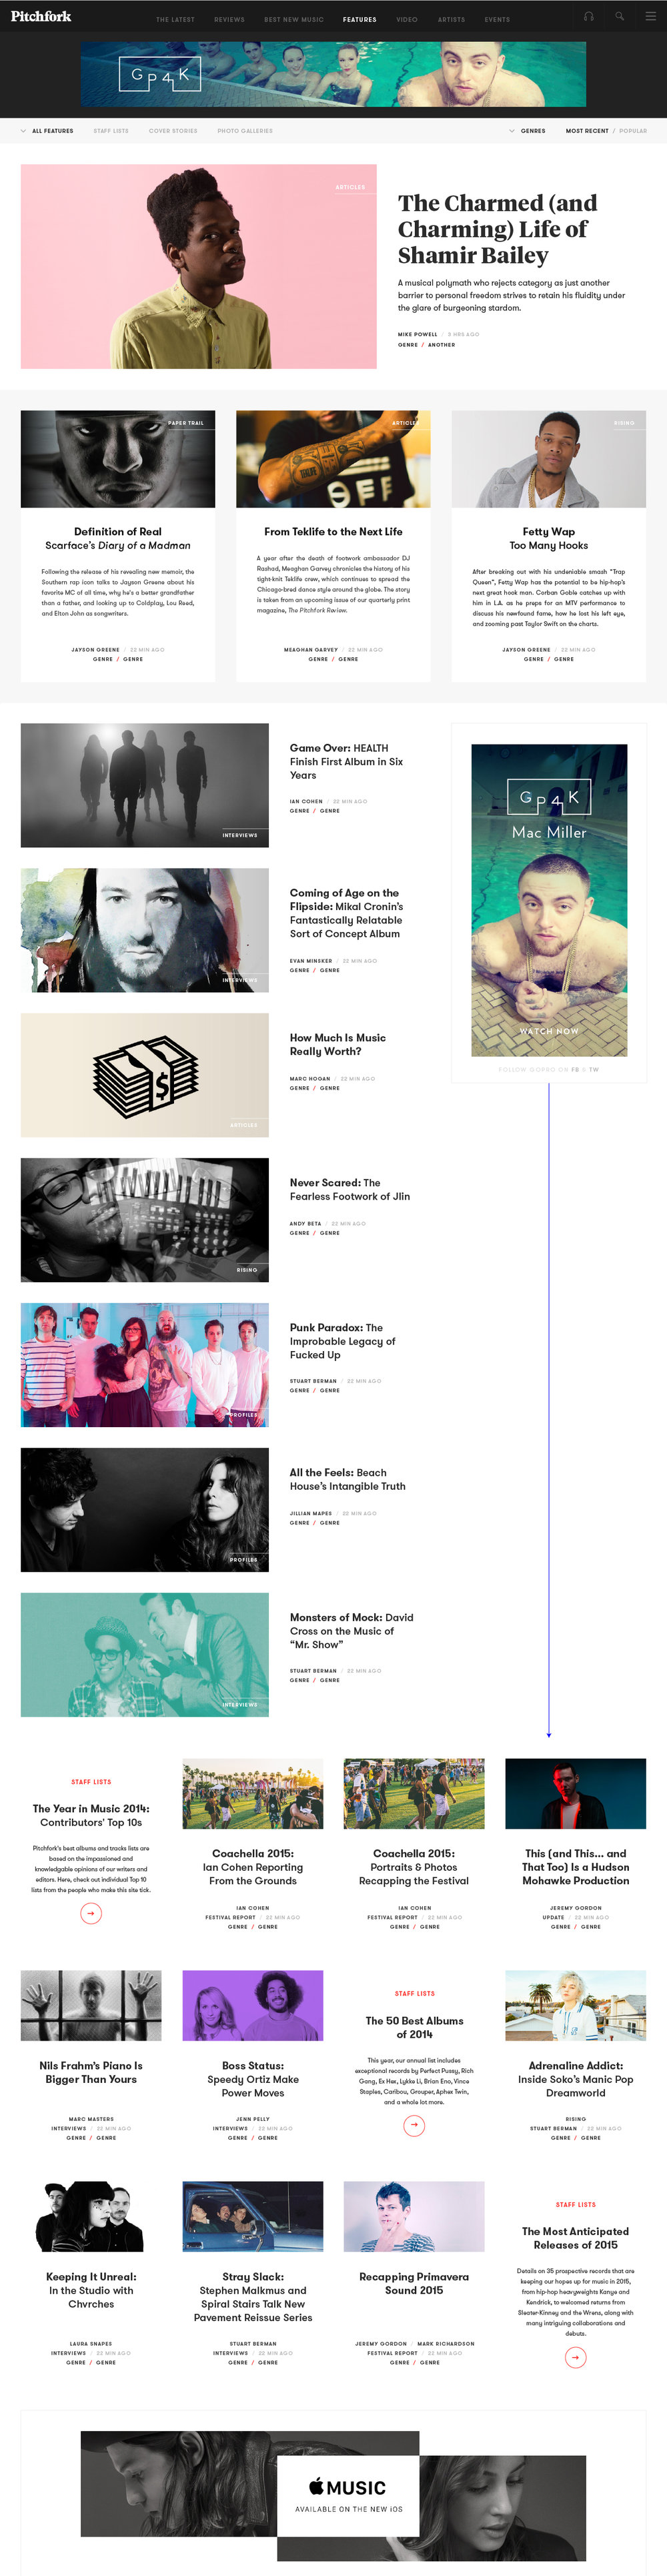 Pitchfork Website Redesign — Features Collection Page